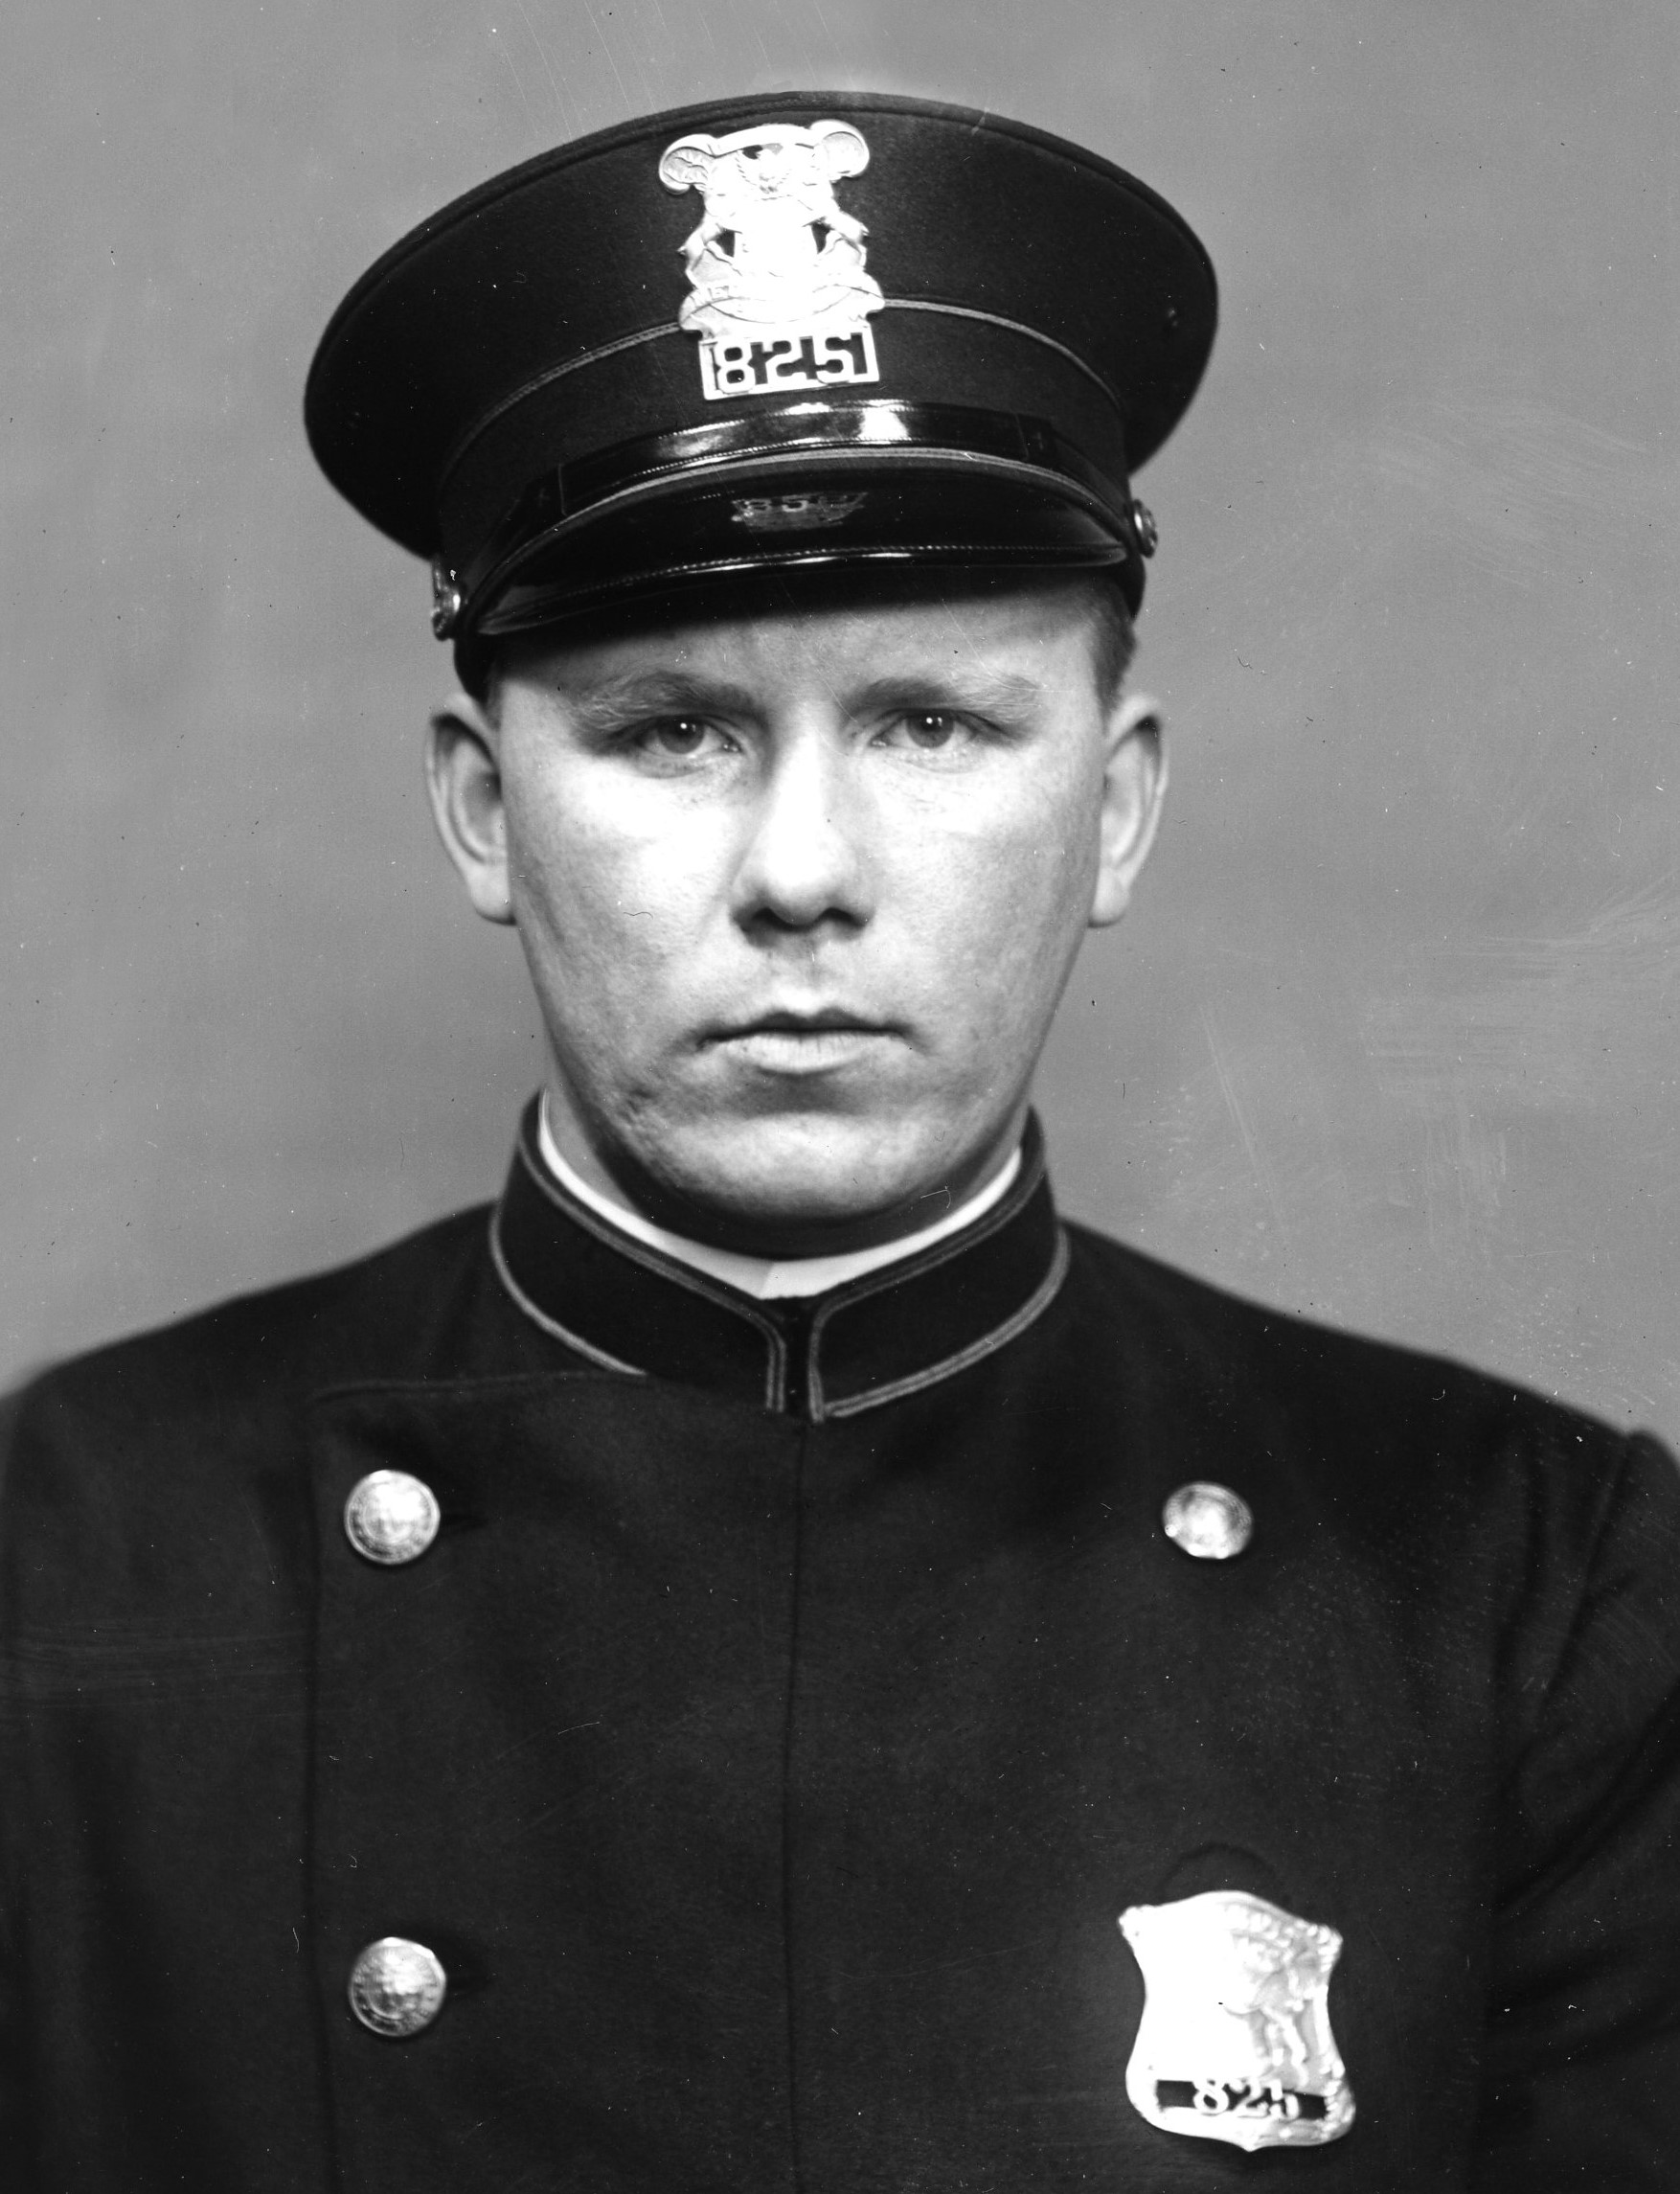 Detective Sergeant Charles McKenna | Detroit Police Department, Michigan